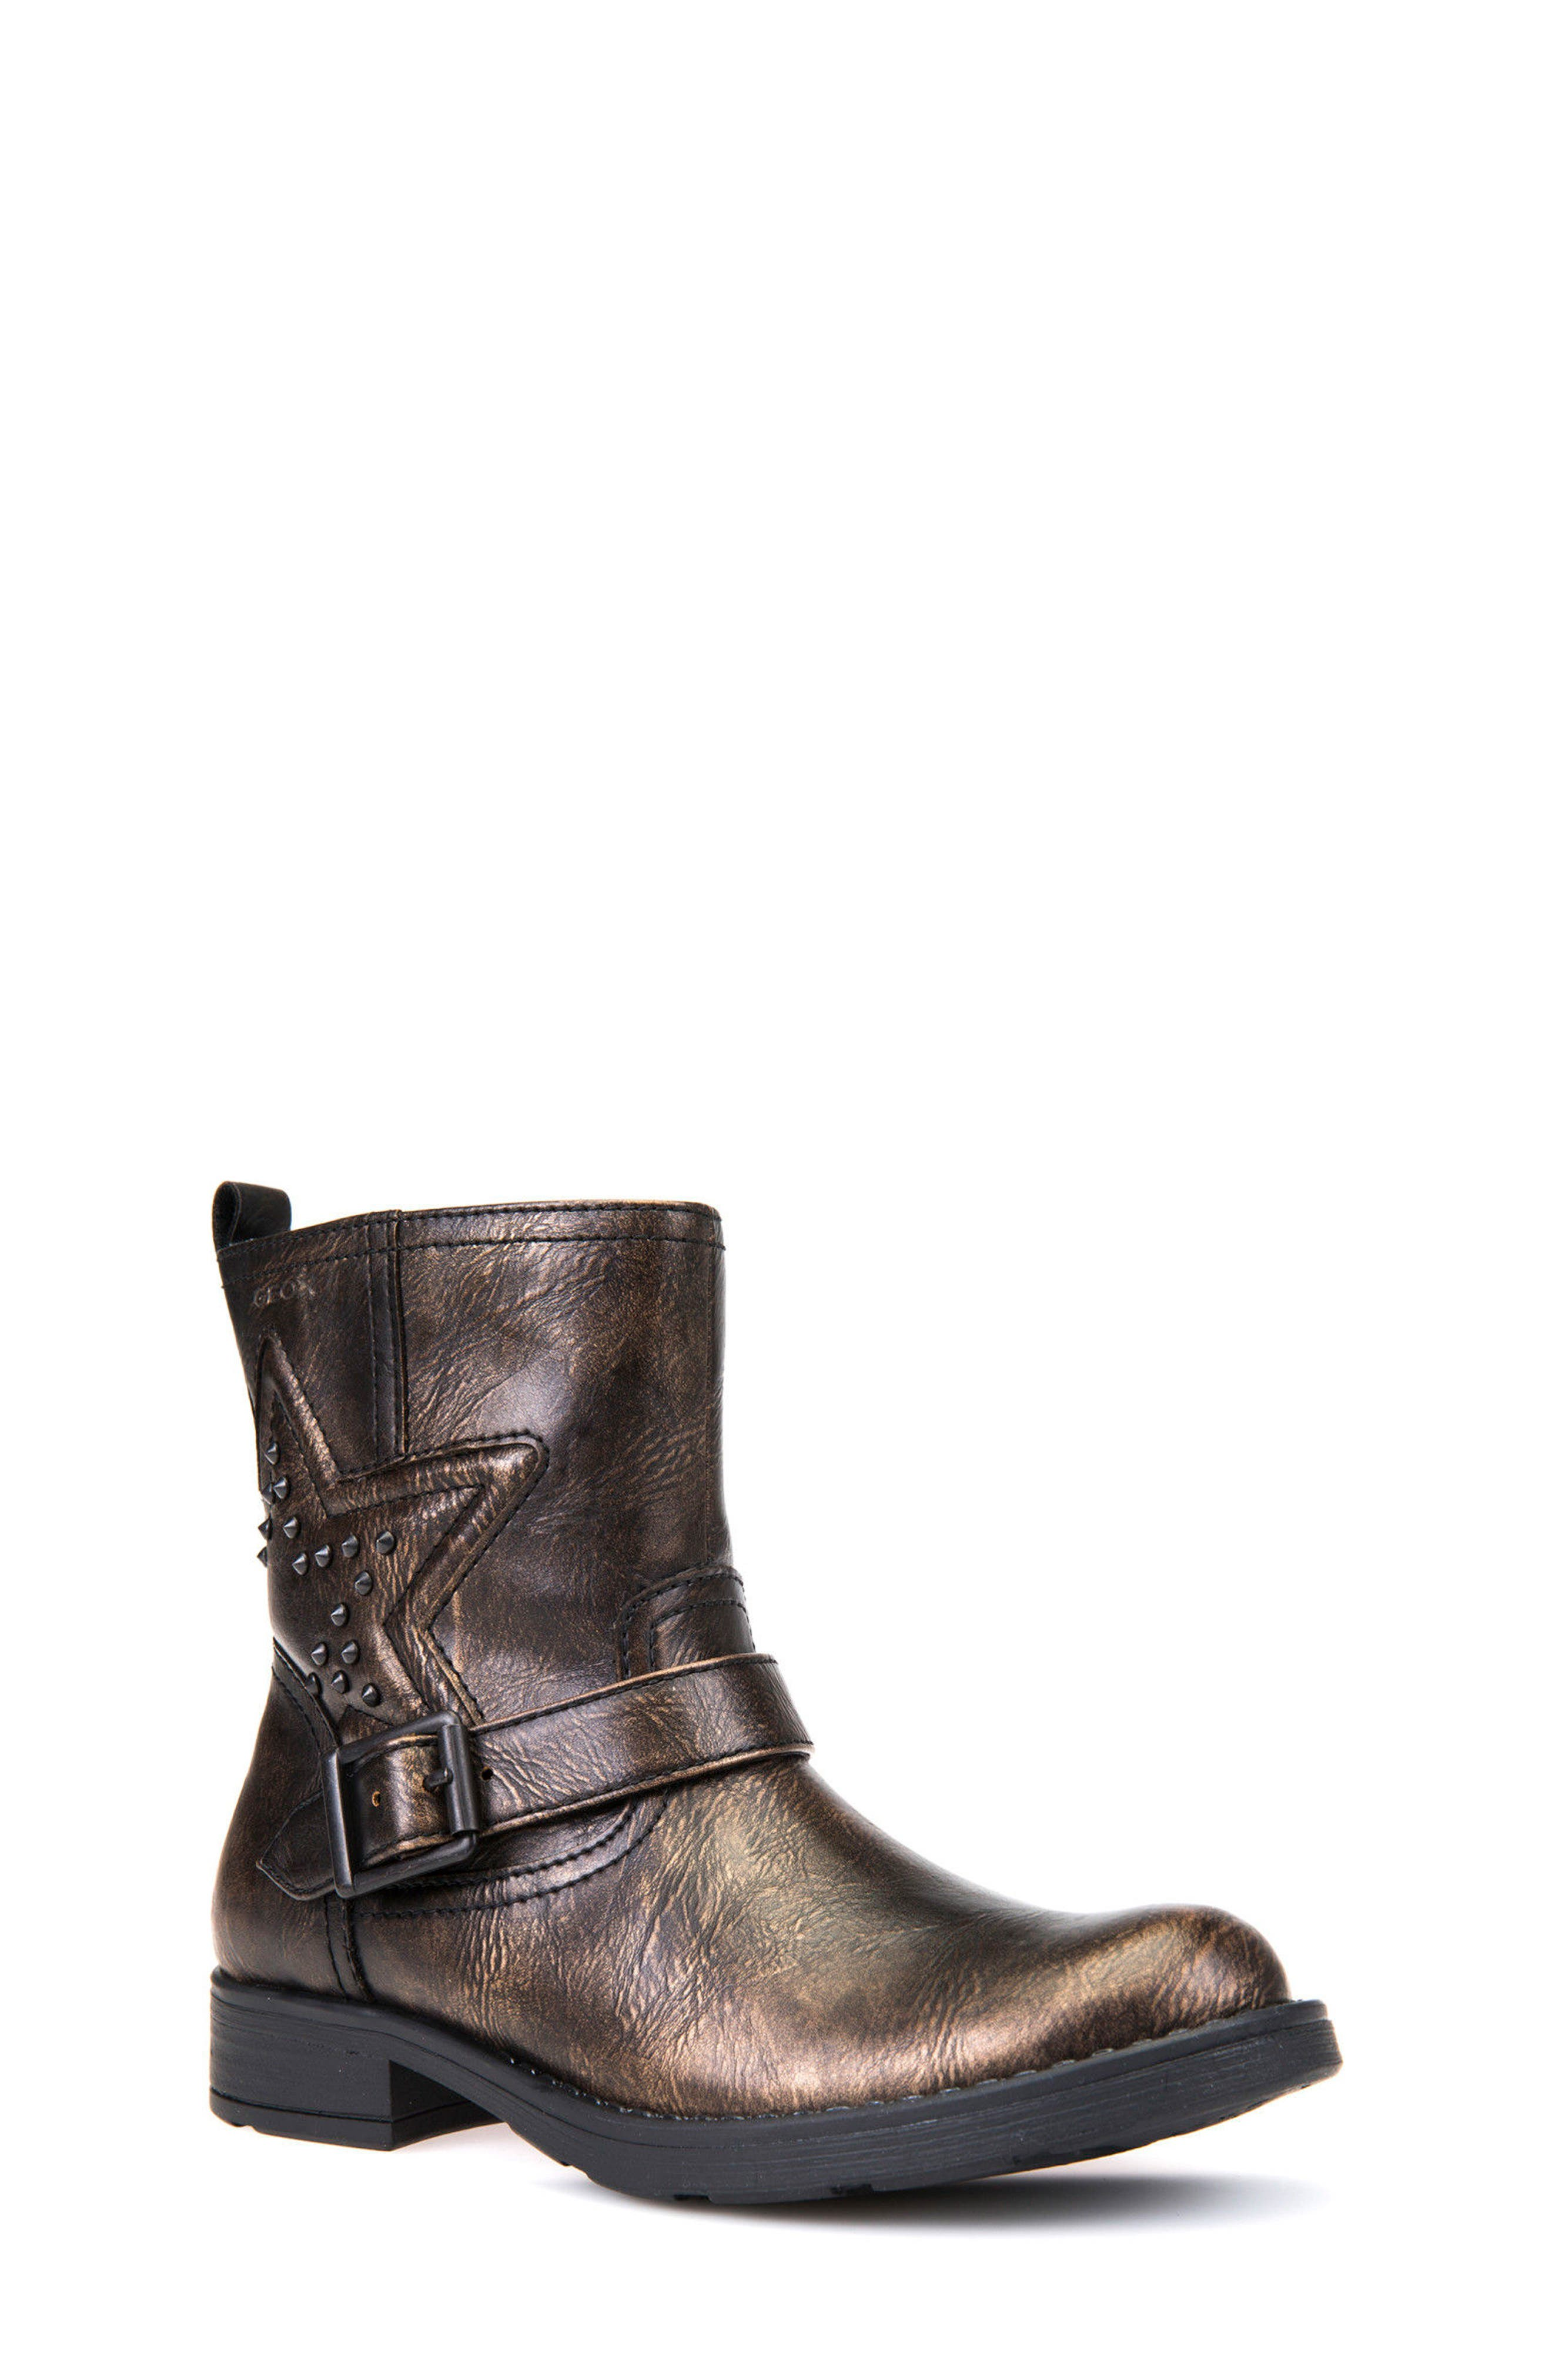 Alternate Image 1 Selected - Geox Sofia Boot (Toddler, Little Kid & Big Kid)